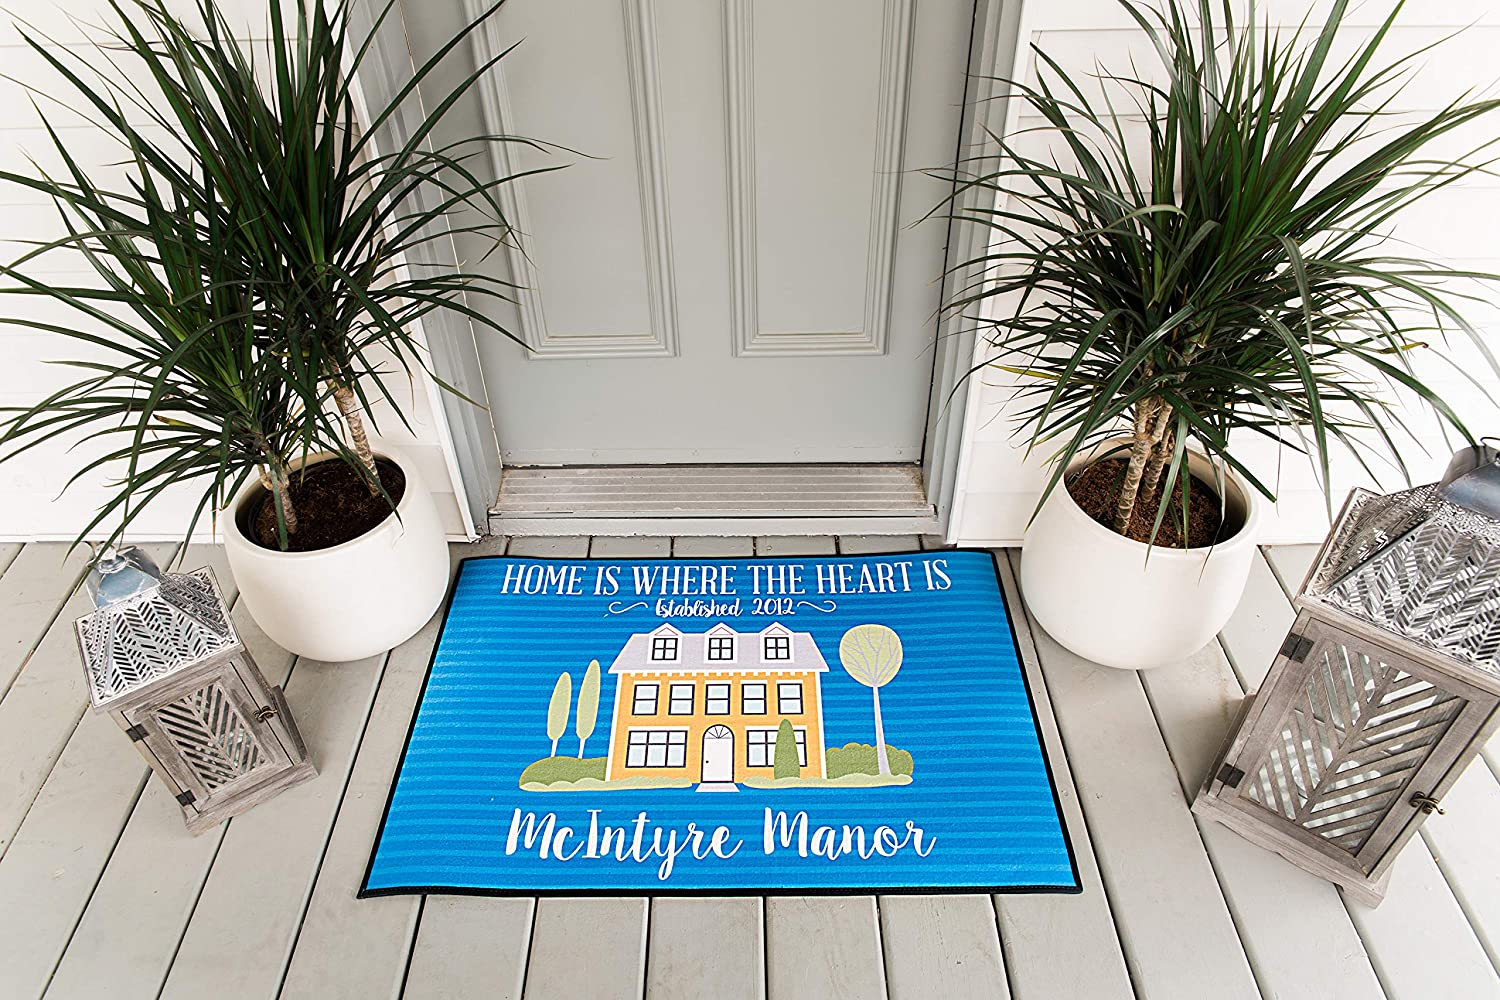 Customized Non-Slip Large Doormat for Front Door, Outdoor and Indoor Personalized Rug, Home Decoration, Wedding, Anniversary, and Housewarming Gift (McIntyre Design, 36 x 24)